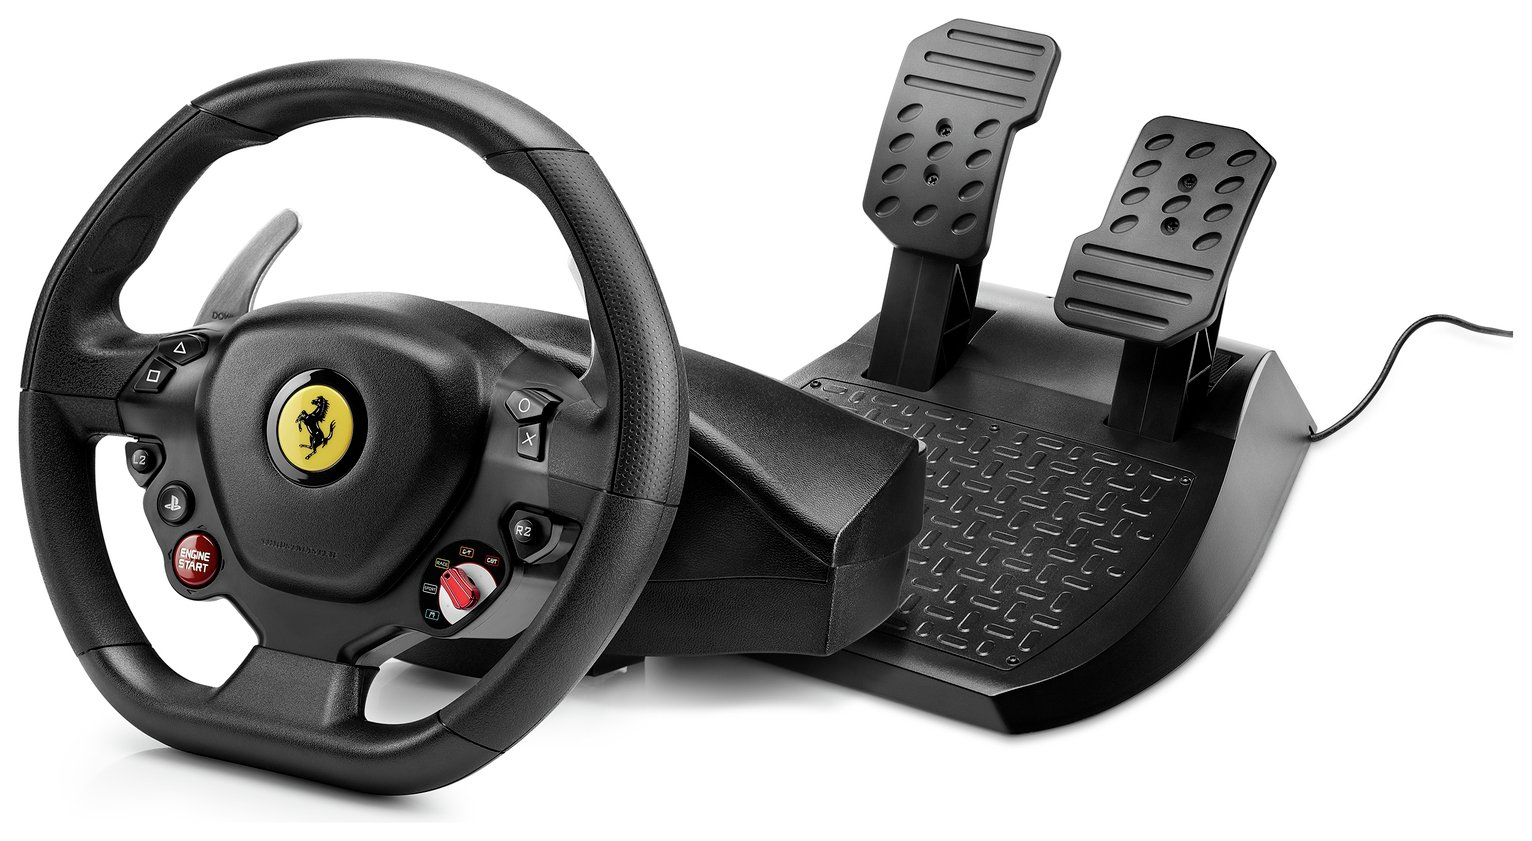 Thrustmaster Find Offers Online And Compare Prices At Wunderstore Tss Sequential Shifter Handbreak Sparco T80 Ferrari 488 Gtb Edn Racing Wheel For Ps4 From